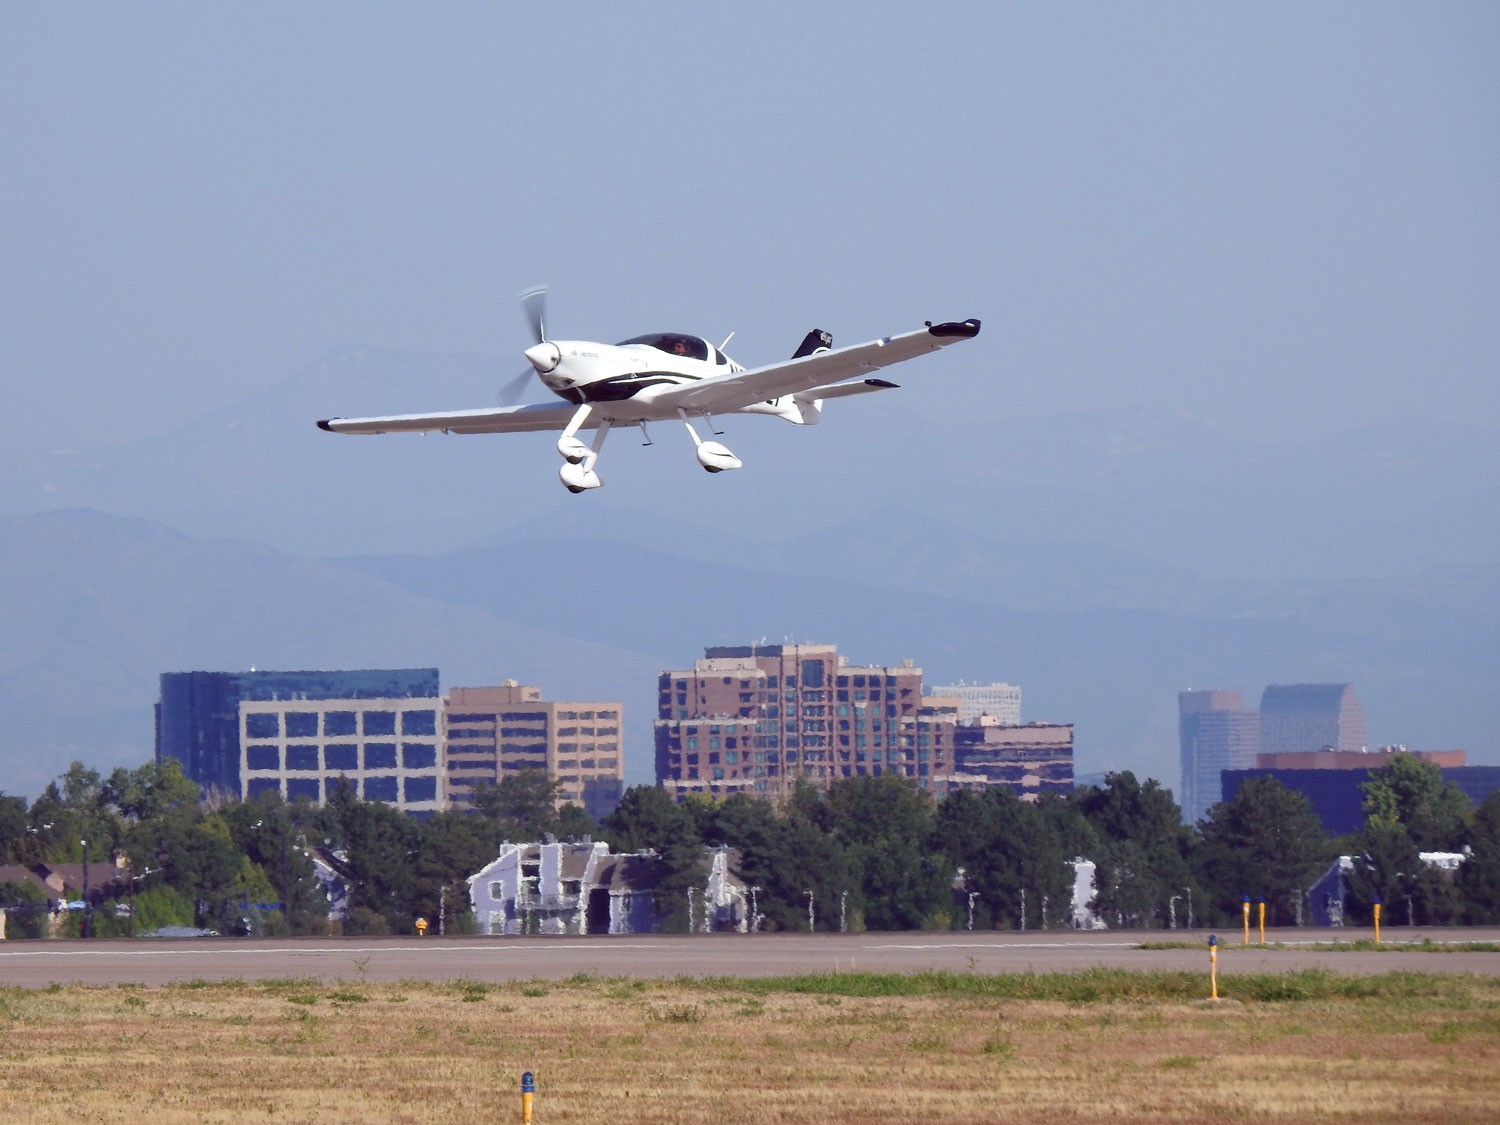 An electric airplane in flight.